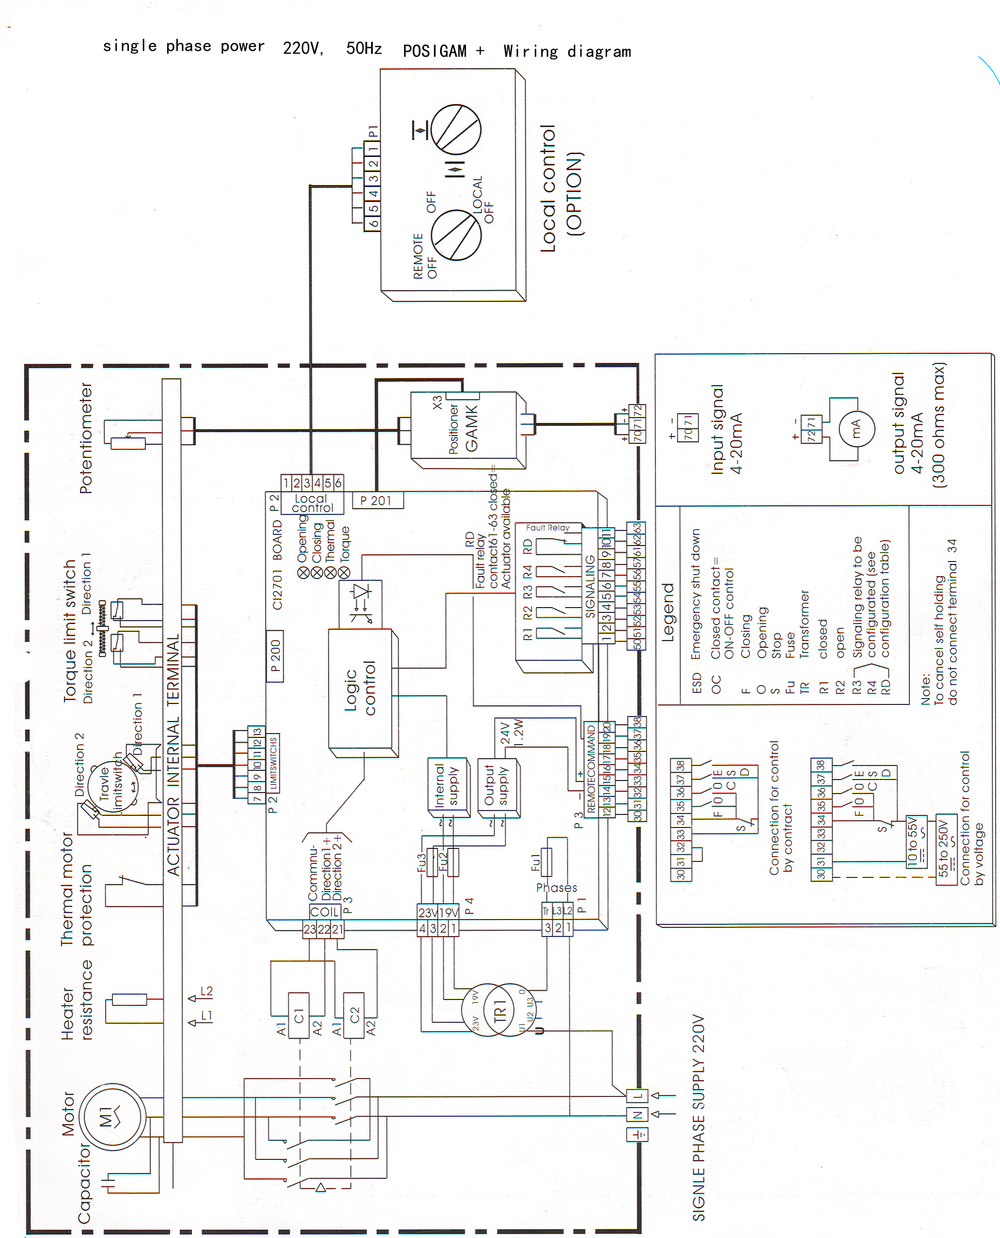 rotork wiring diagram rotork image wiring diagram rotork wiring diagram pdf rotork auto wiring diagram schematic on rotork wiring diagram